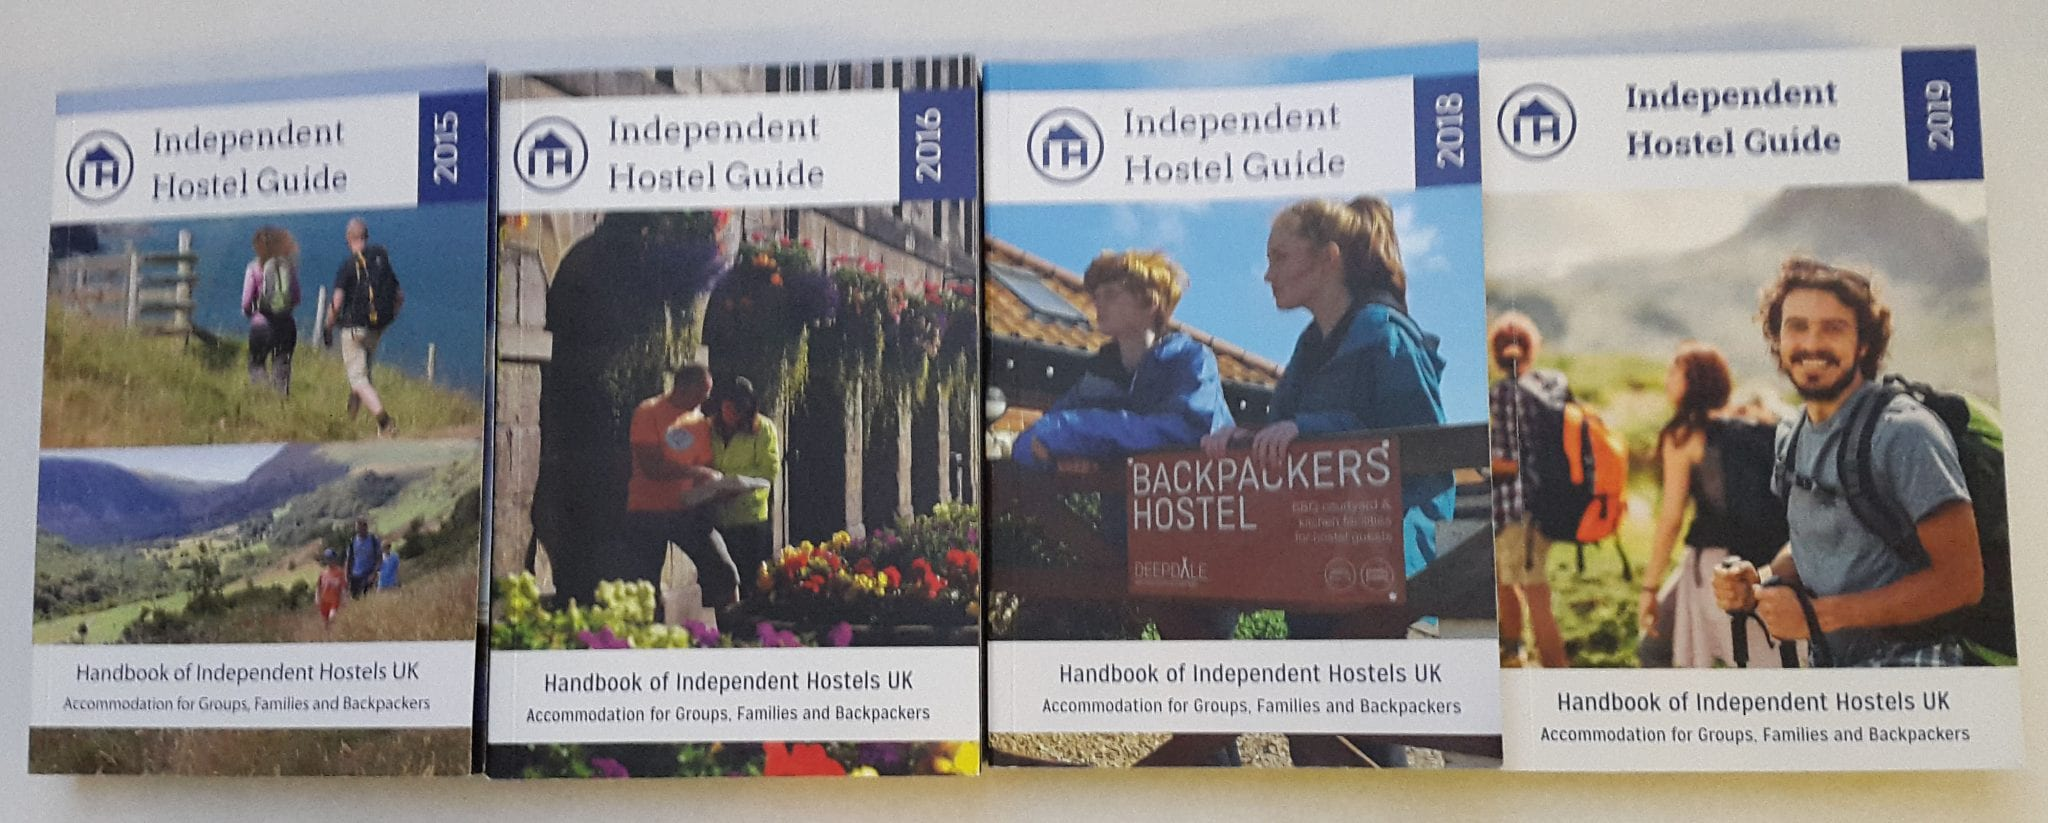 Independent Hostel Guides from 2013 to 2019